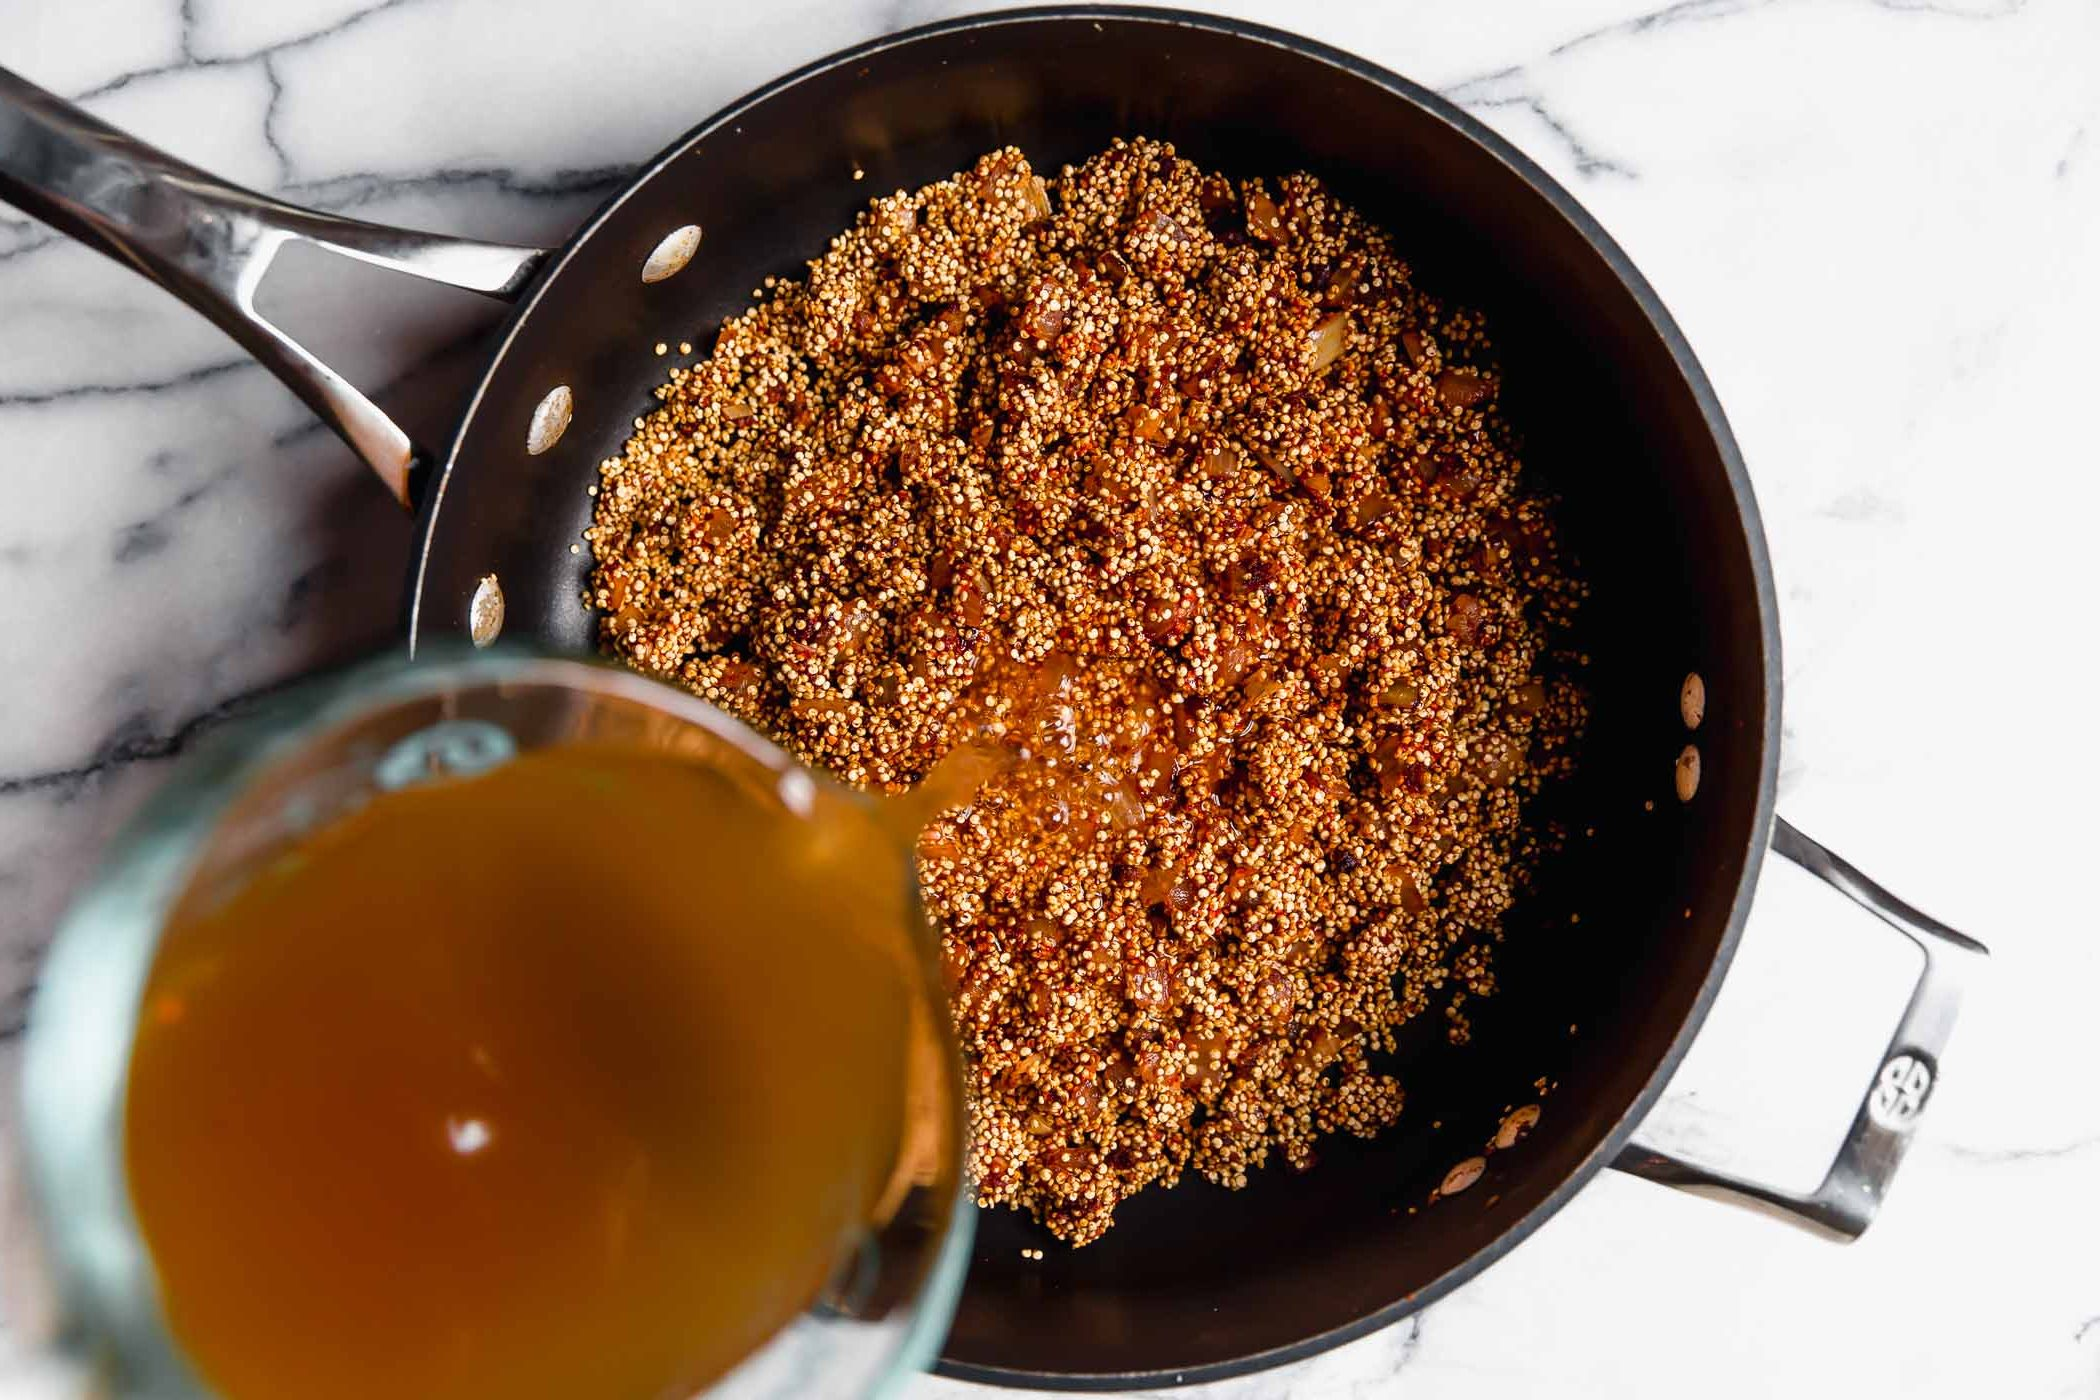 How to make Quinoa Taco Meat - Step 3: Adding vegetable stock to skillet with quinoa & aromatics.